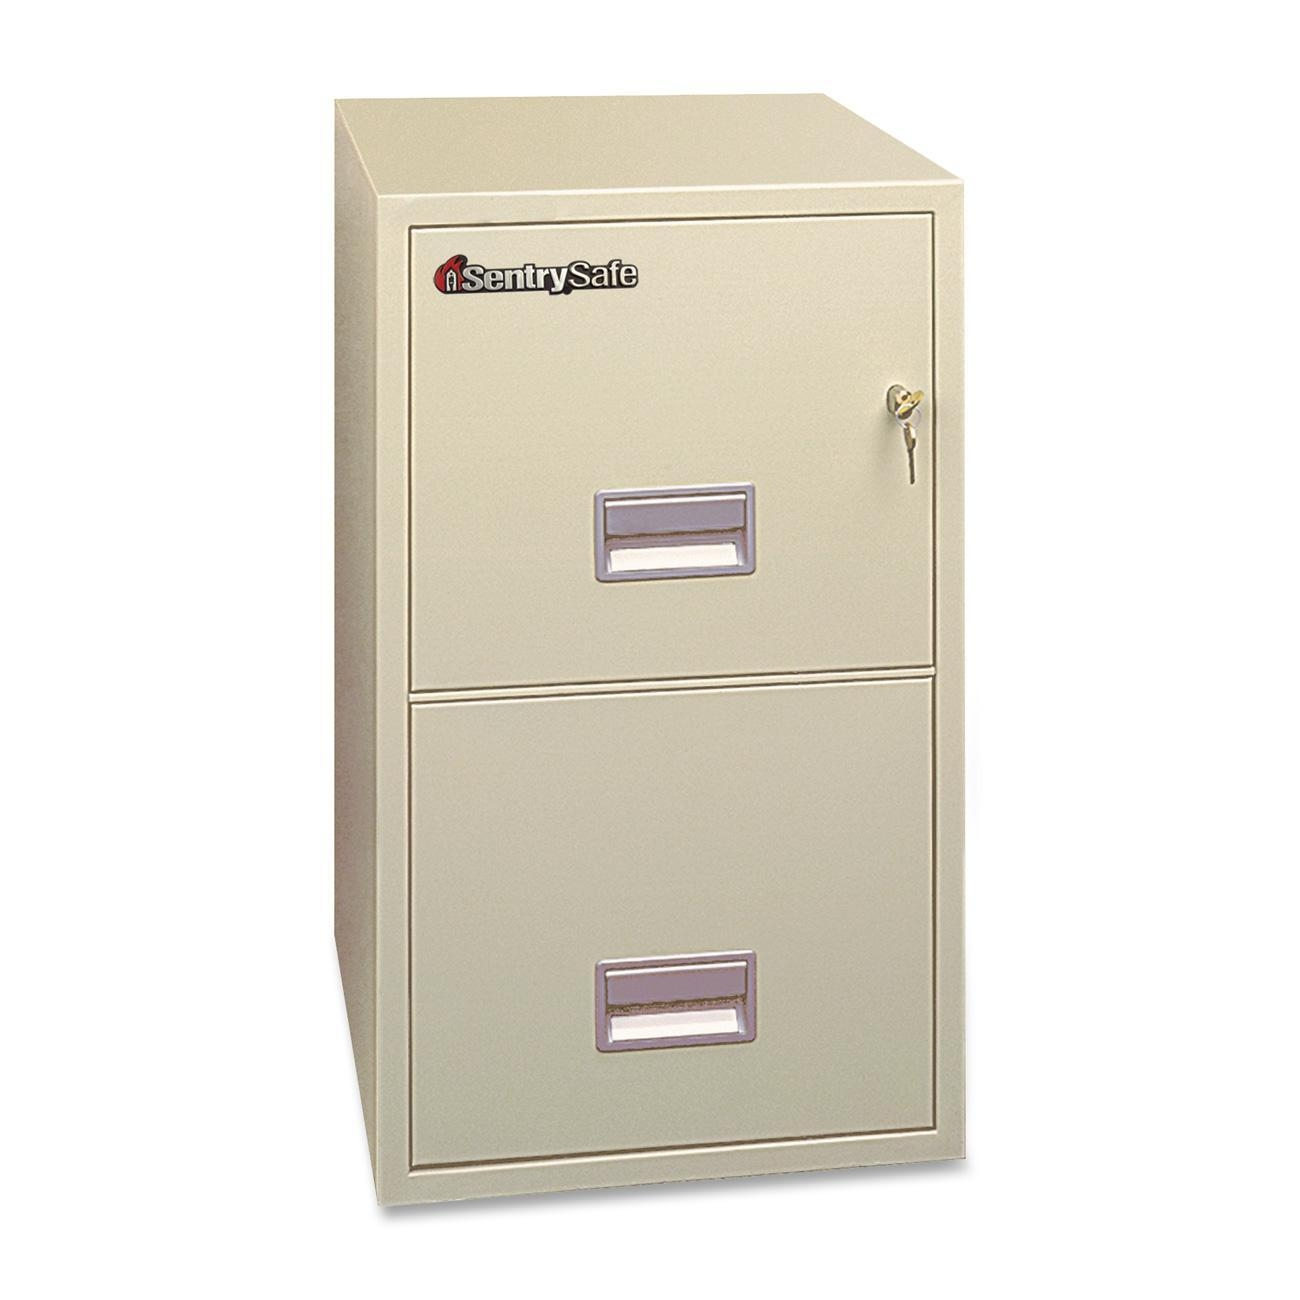 Interesting Fireproof File Cabinet In Antique White With Silver Handle And Standard Lock For Home Office Furniture Ideas